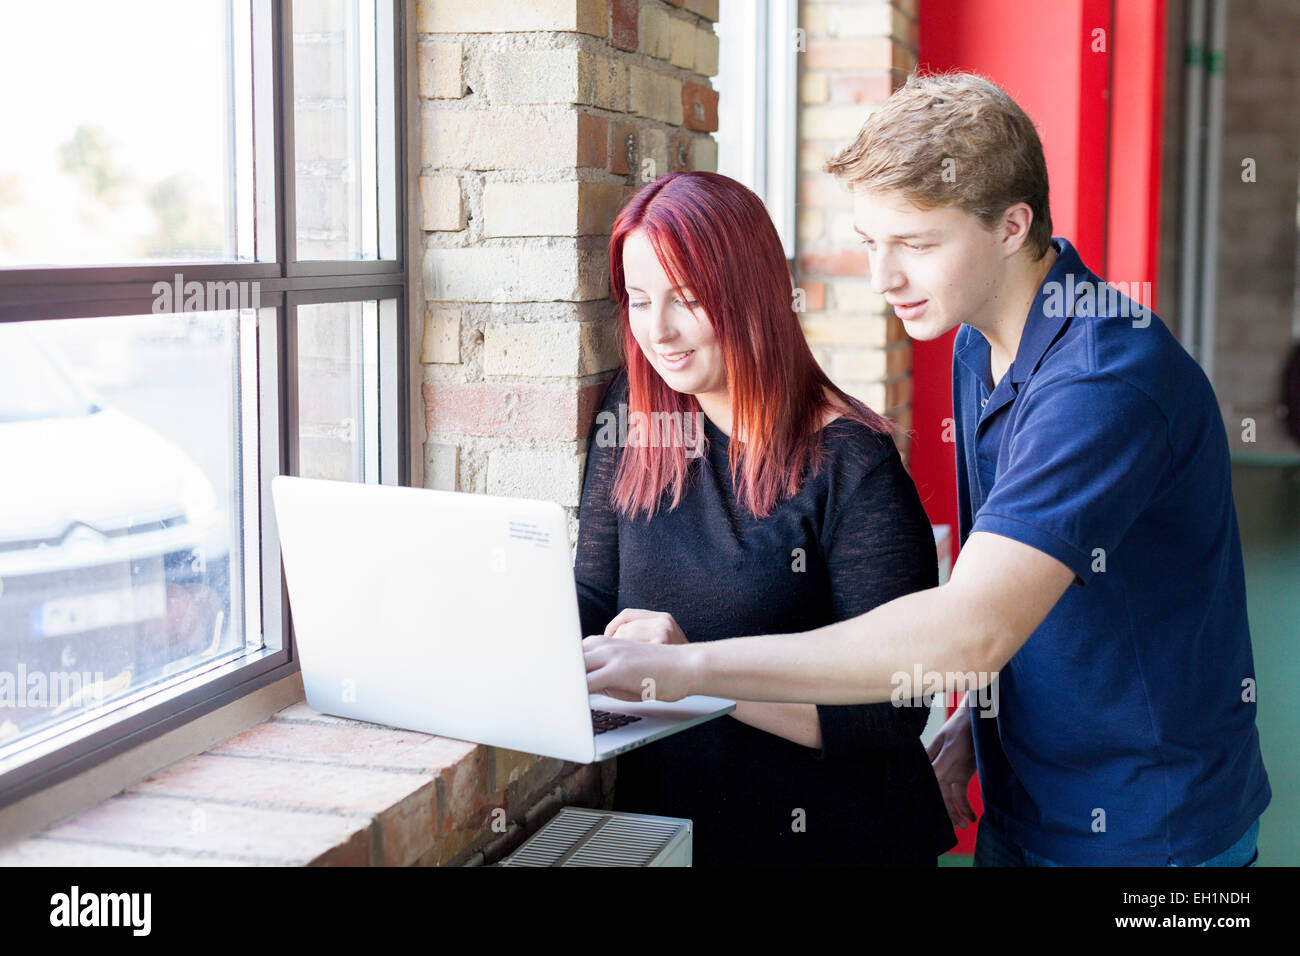 Beautiful young woman using laptop in health club - Stock Image